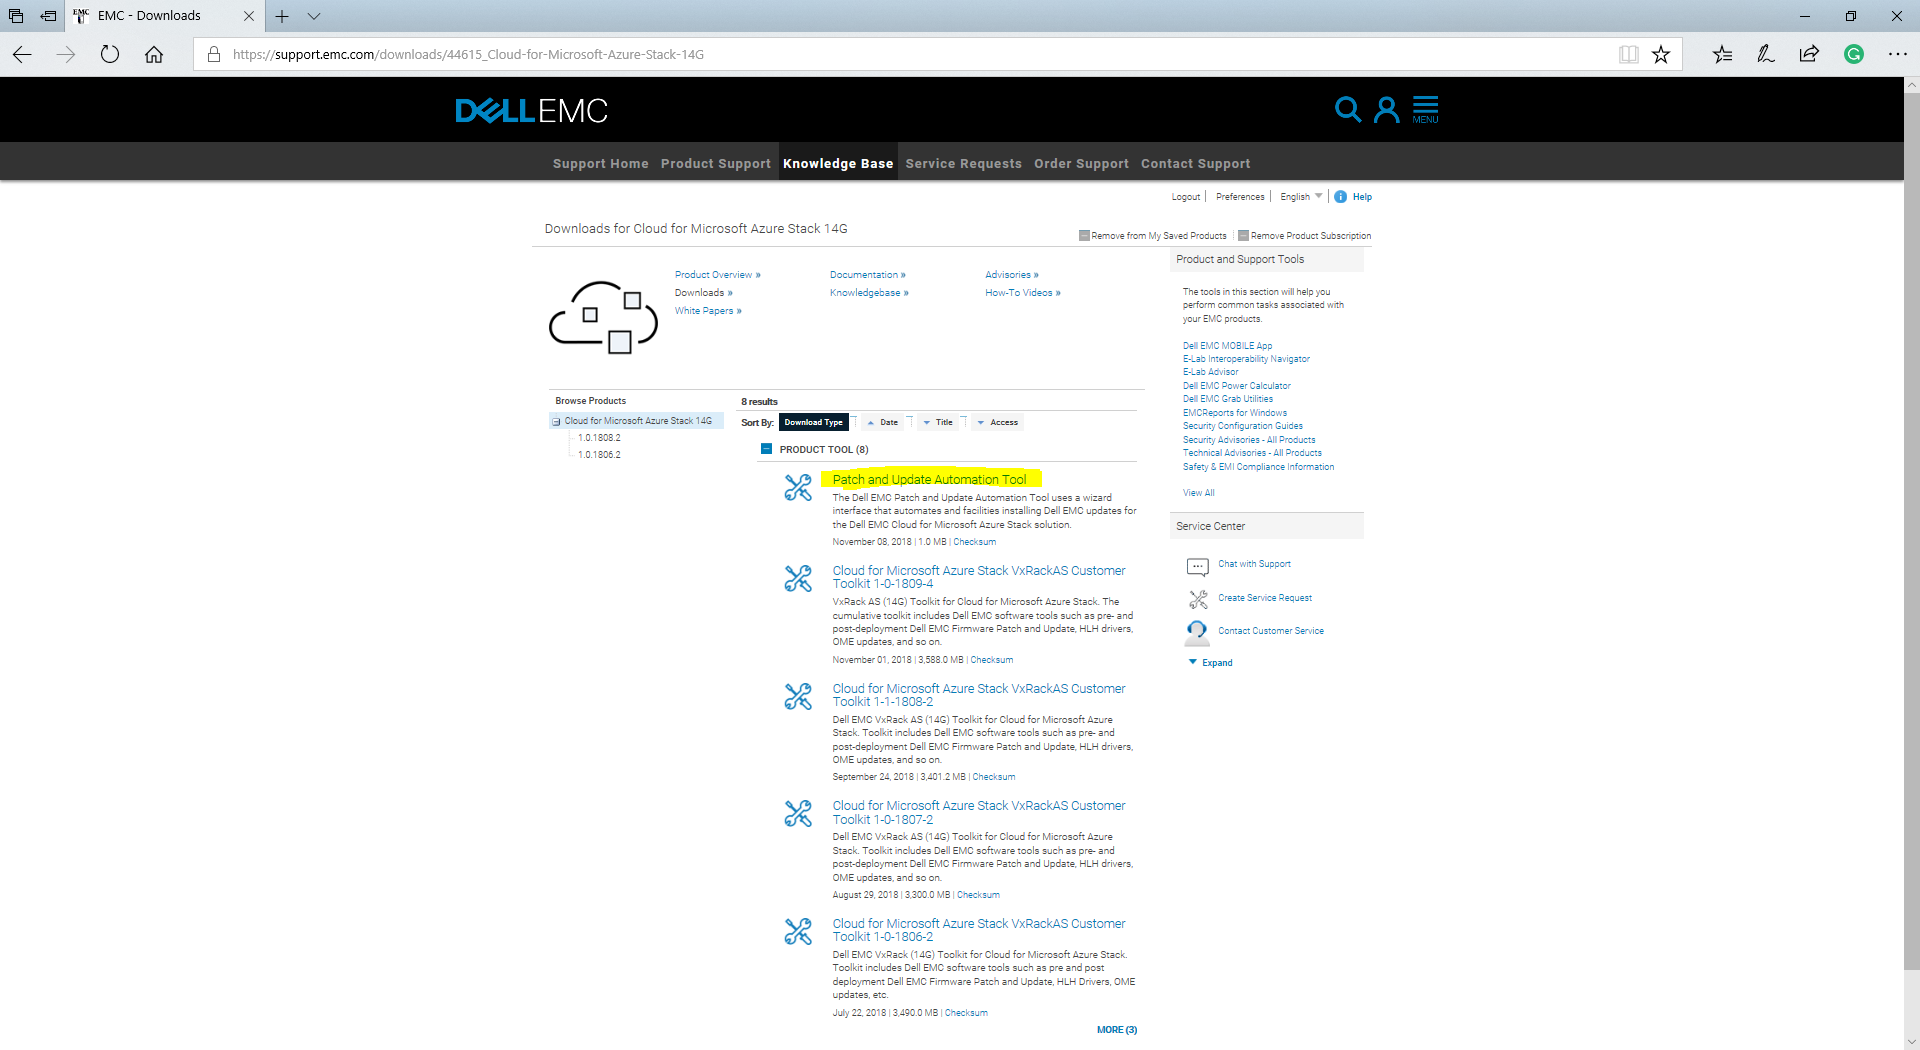 Patch and Update Automation Tool for Dell EMC VxRack Azure